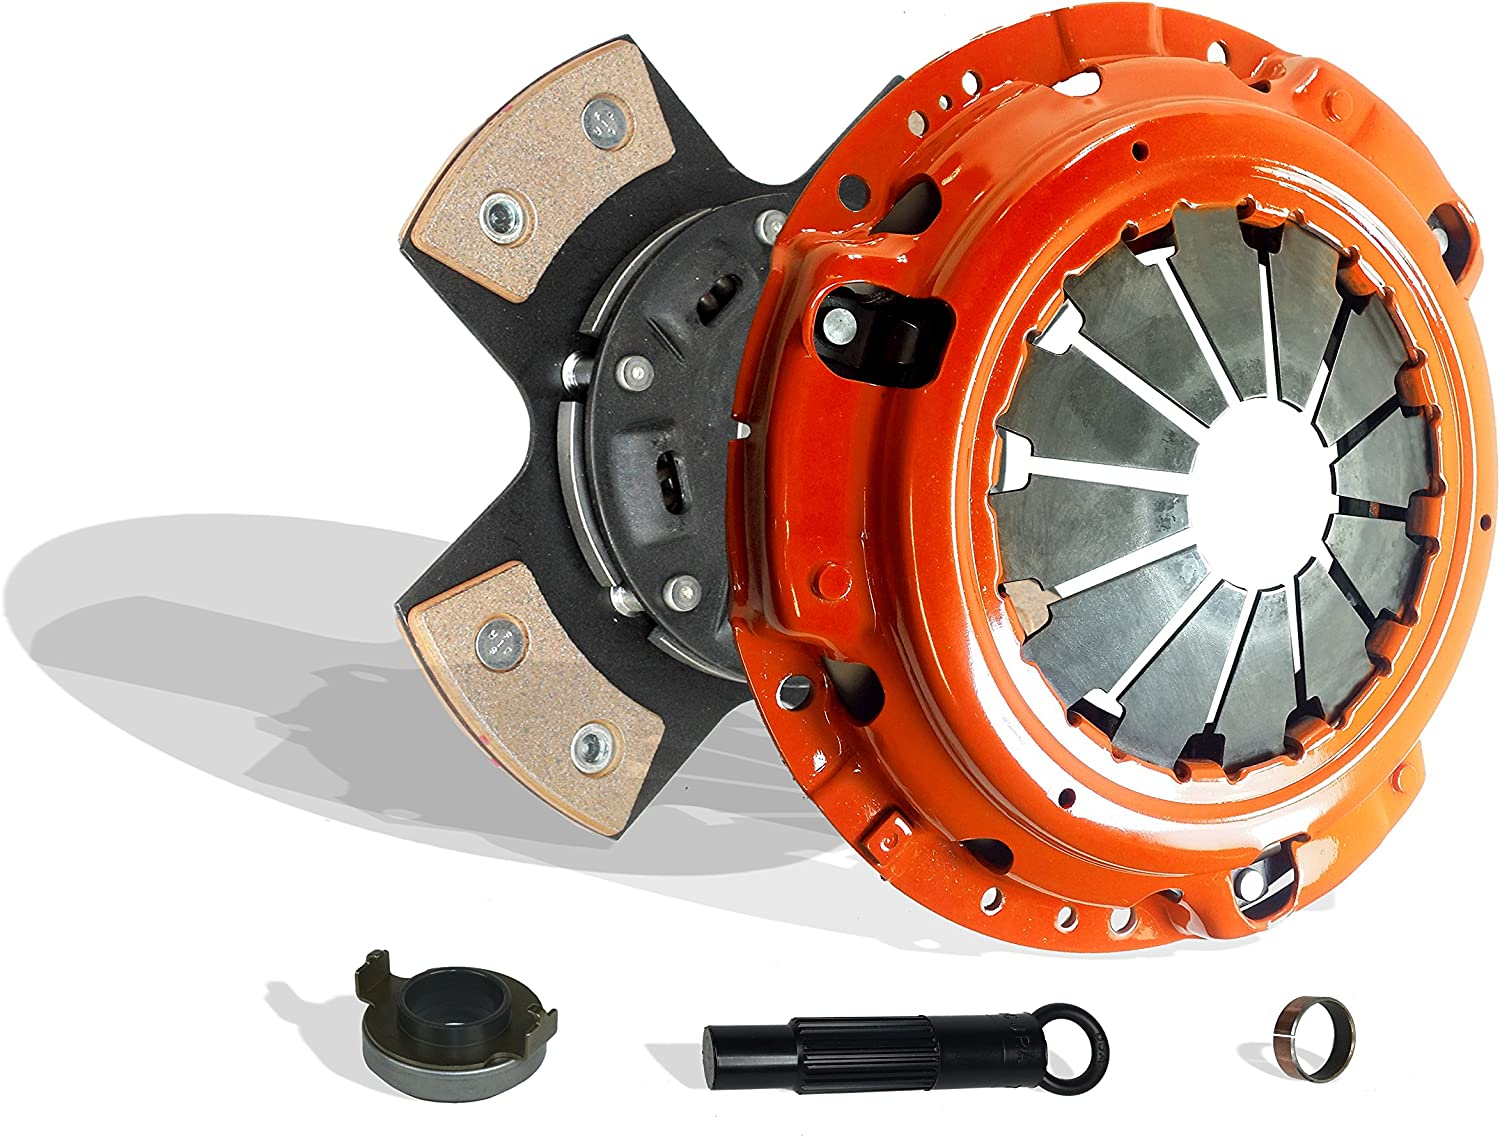 NEW HD STAGE 1 CLUTCH KIT FOR HONDA ACCORD EX DX SE GAS 4Cyl DOHC